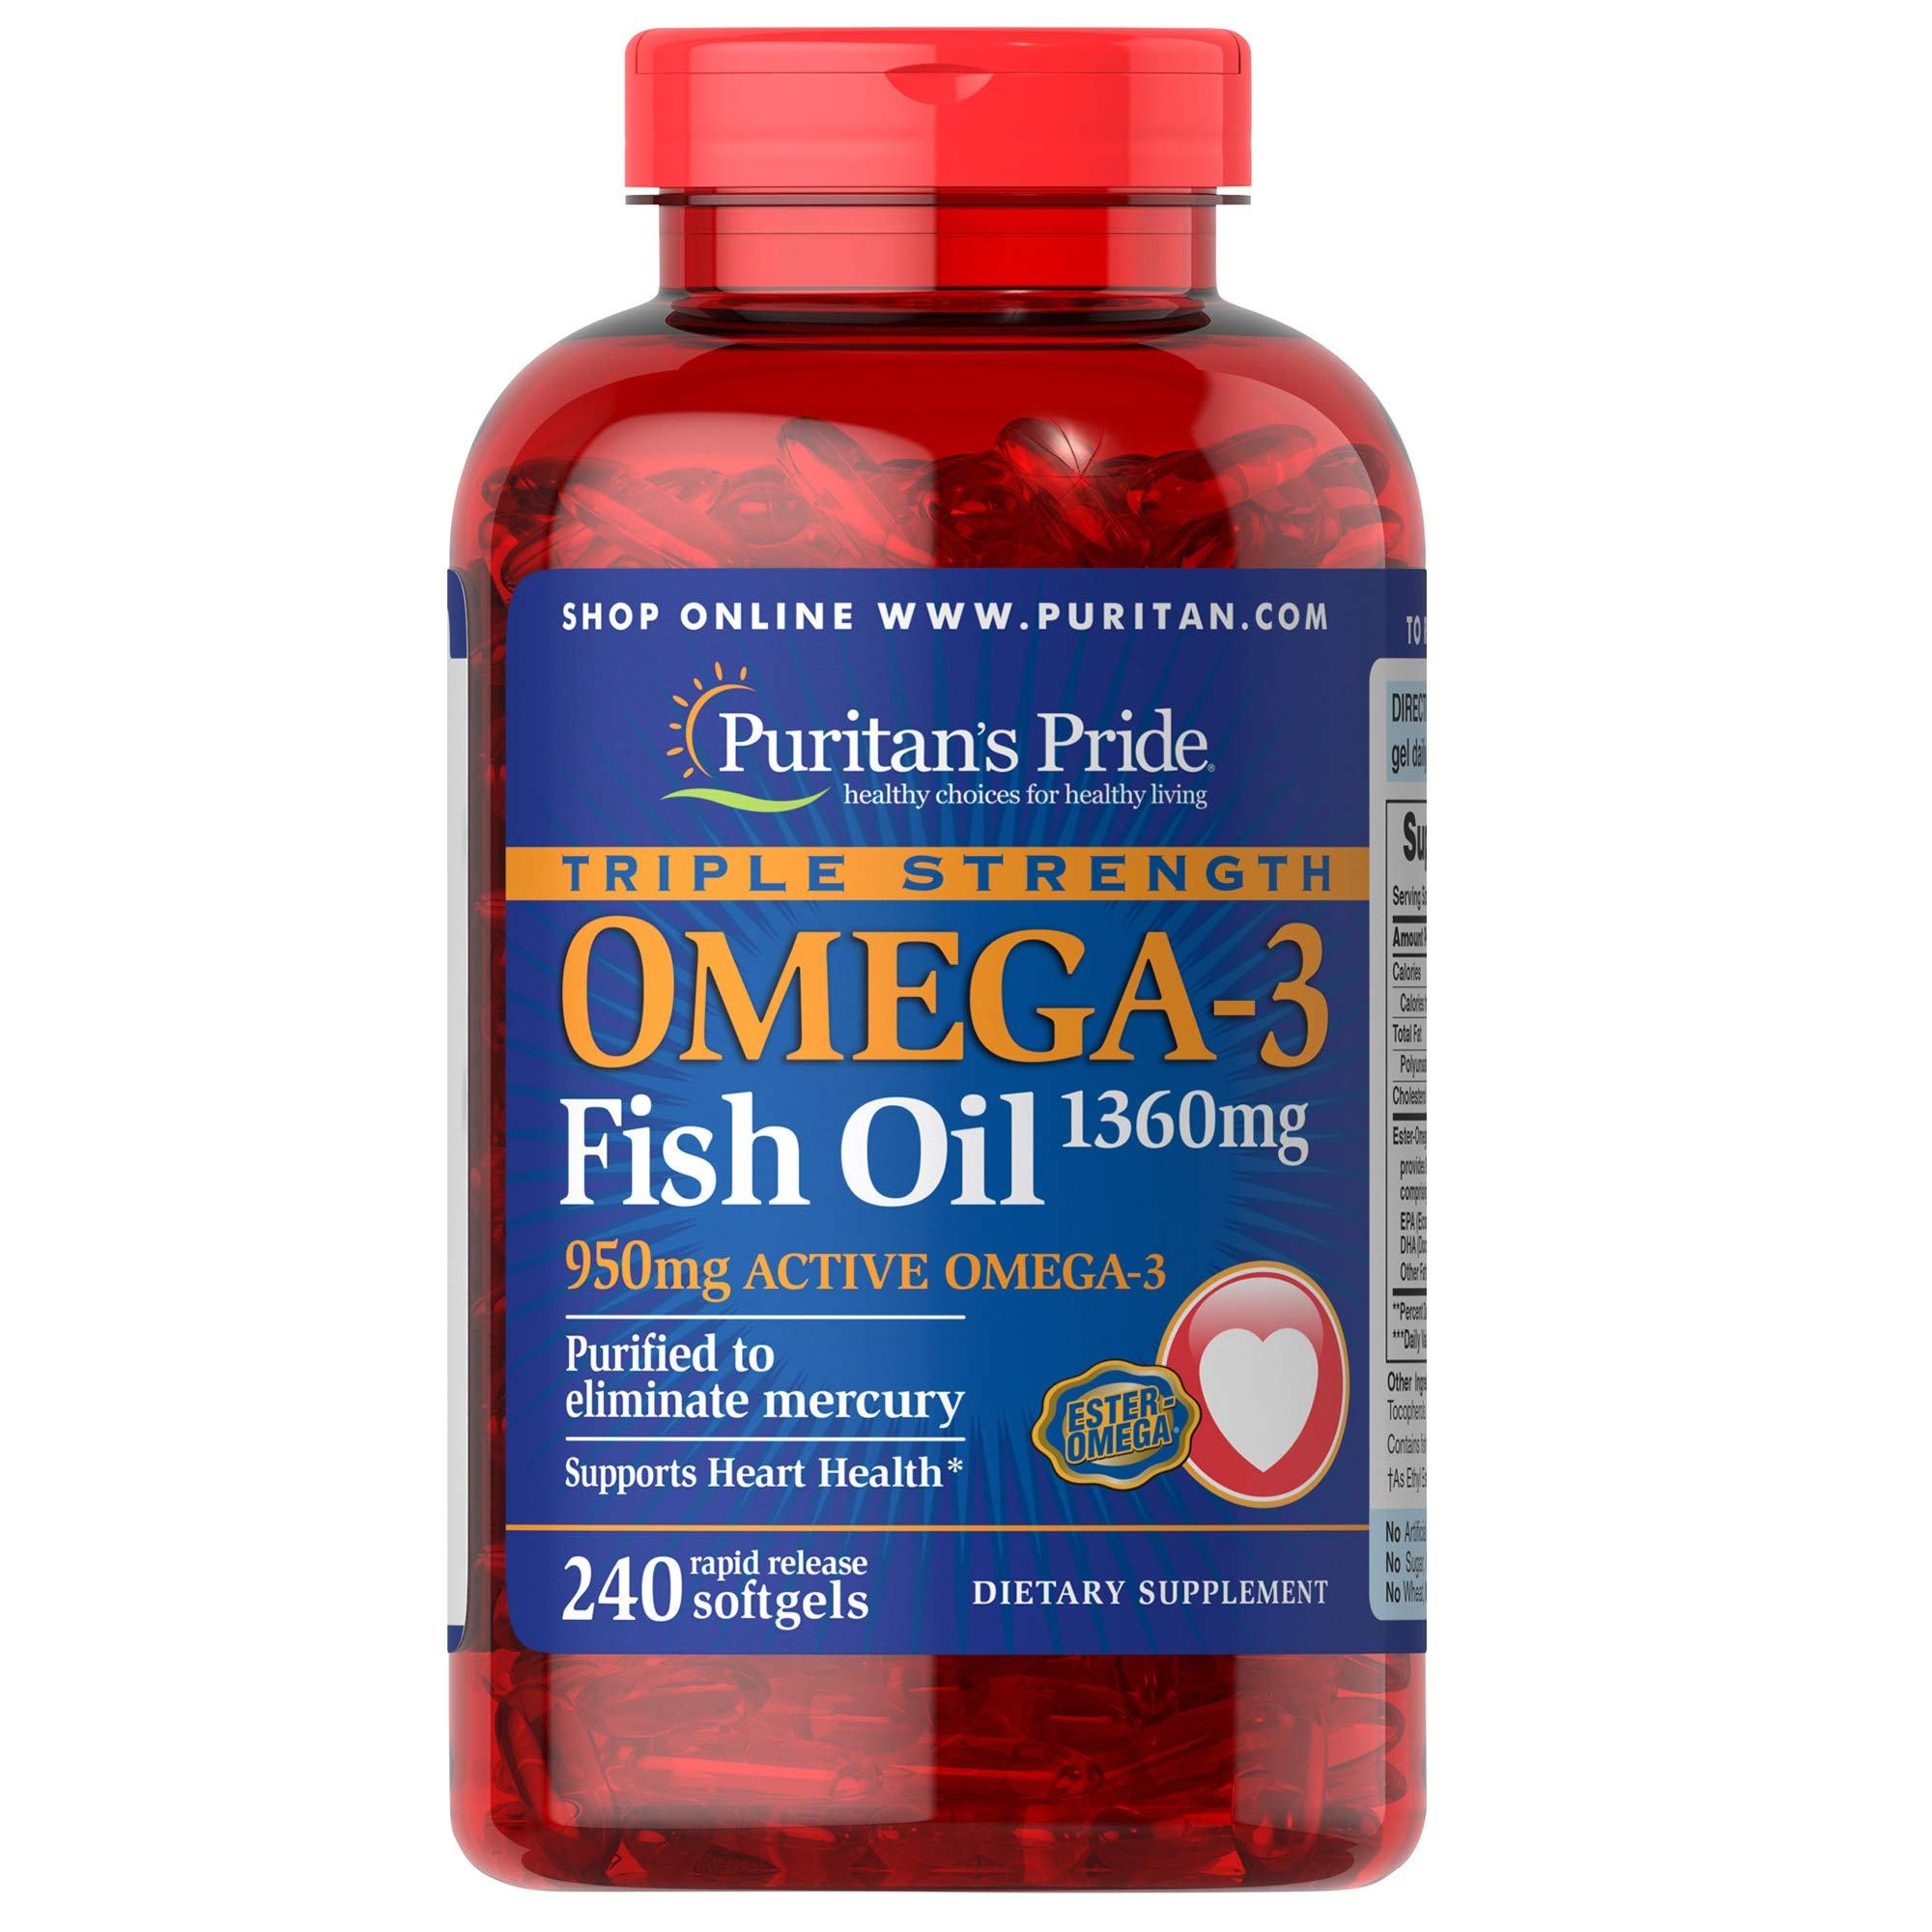 Puritans Pride Triple Strength Omega-3 Fish Oil 1360 Mg (950 Mg Active Omega-3), 240 Count